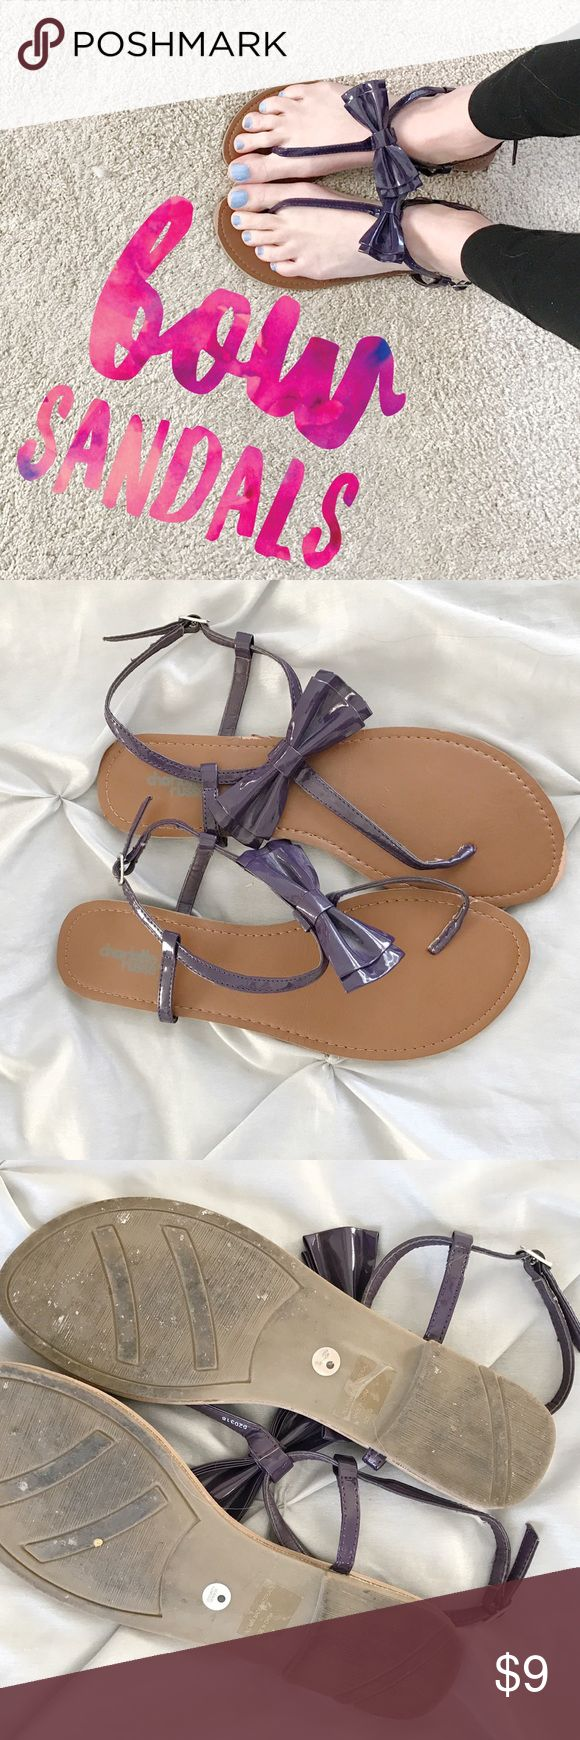 Purple Bow Sandals size 8 Purple Bow Sandals size 8, only worn once Charlotte Russe Shoes Sandals